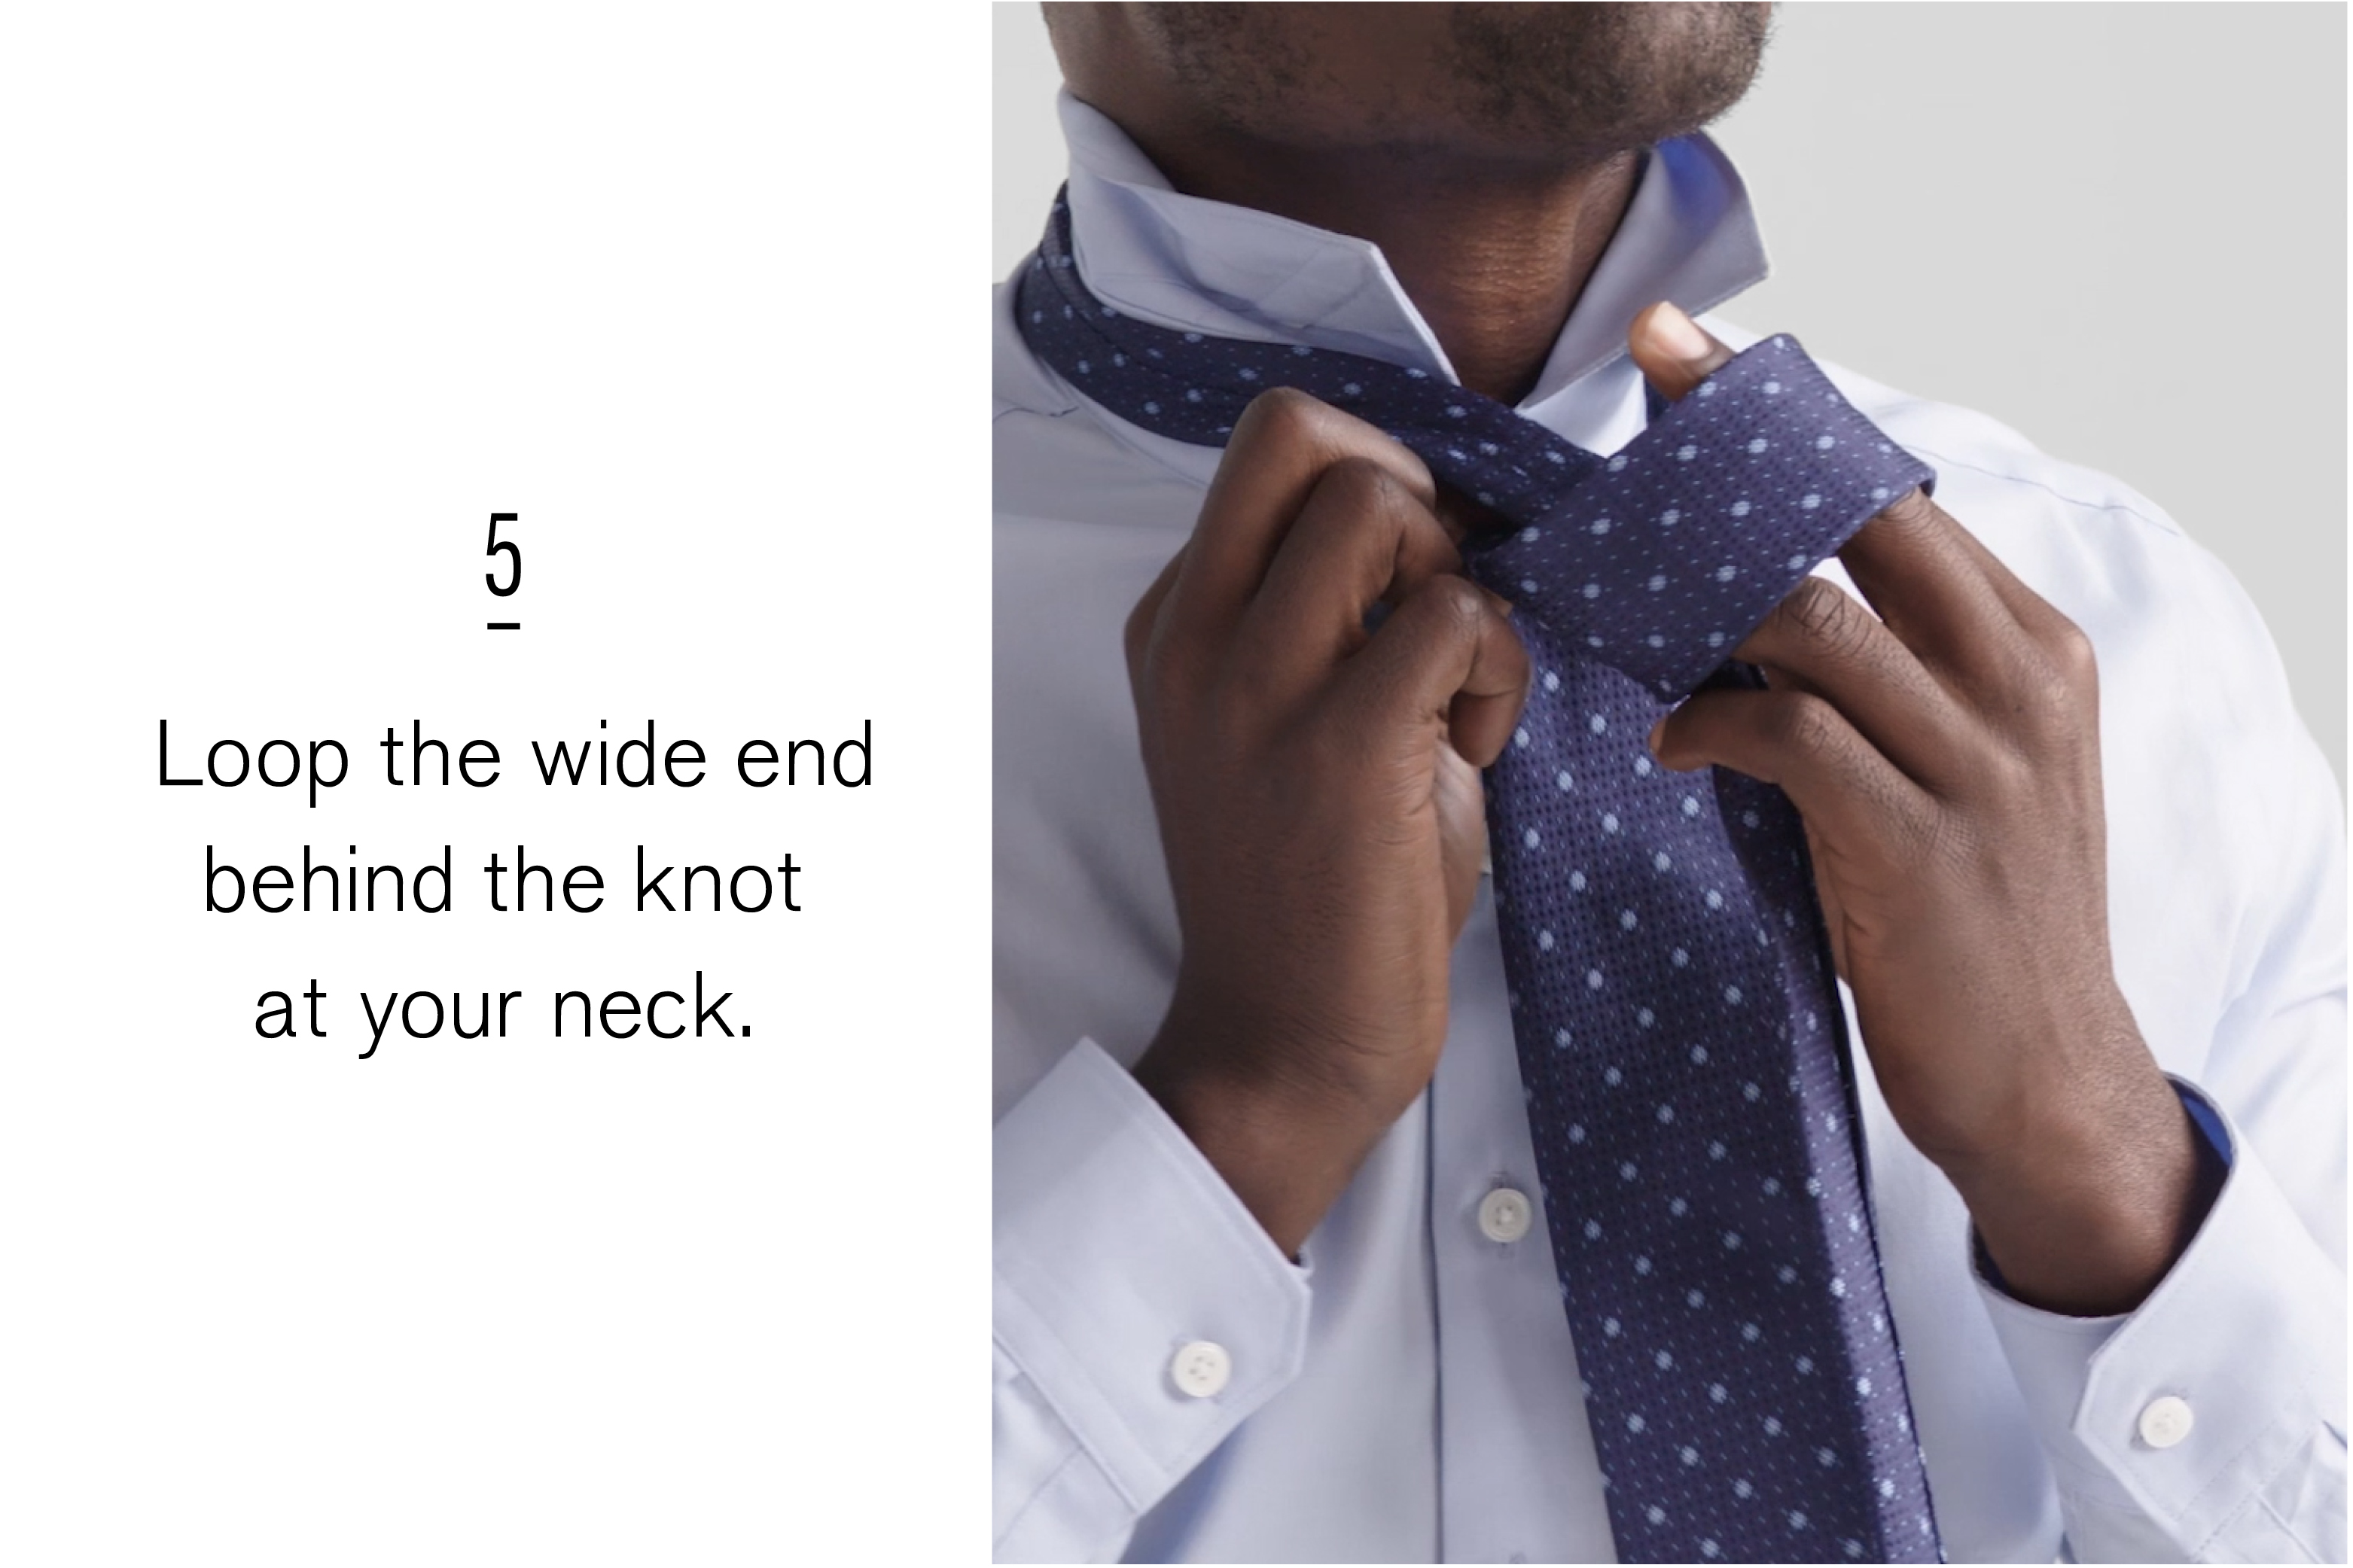 loop-the-wide-end-behind-the-knot-at-your-neck